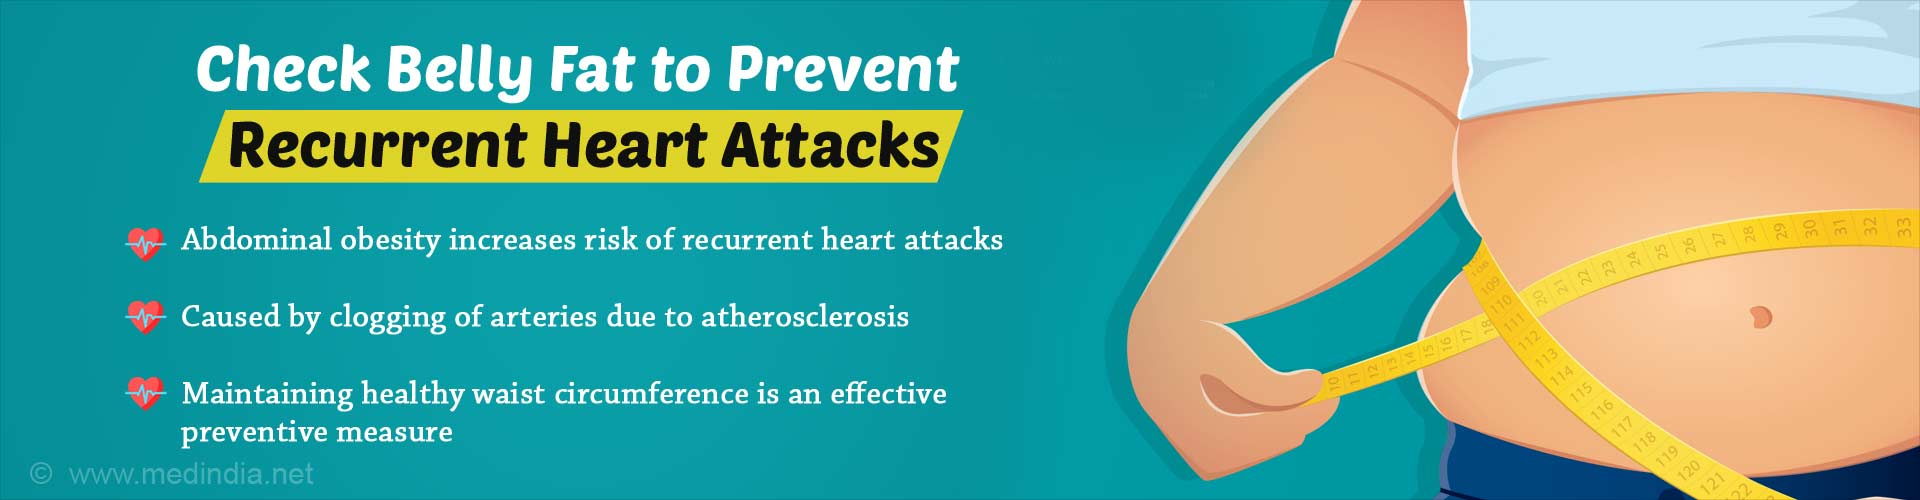 Check belly fat to prevent recurrent heart attacks. Abdominal obesity increases risk of recurrent heart attacks. Caused by clogging of arteries due to atherosclerosis. Maintaining healthy waist circumference is an effective preventive measure.